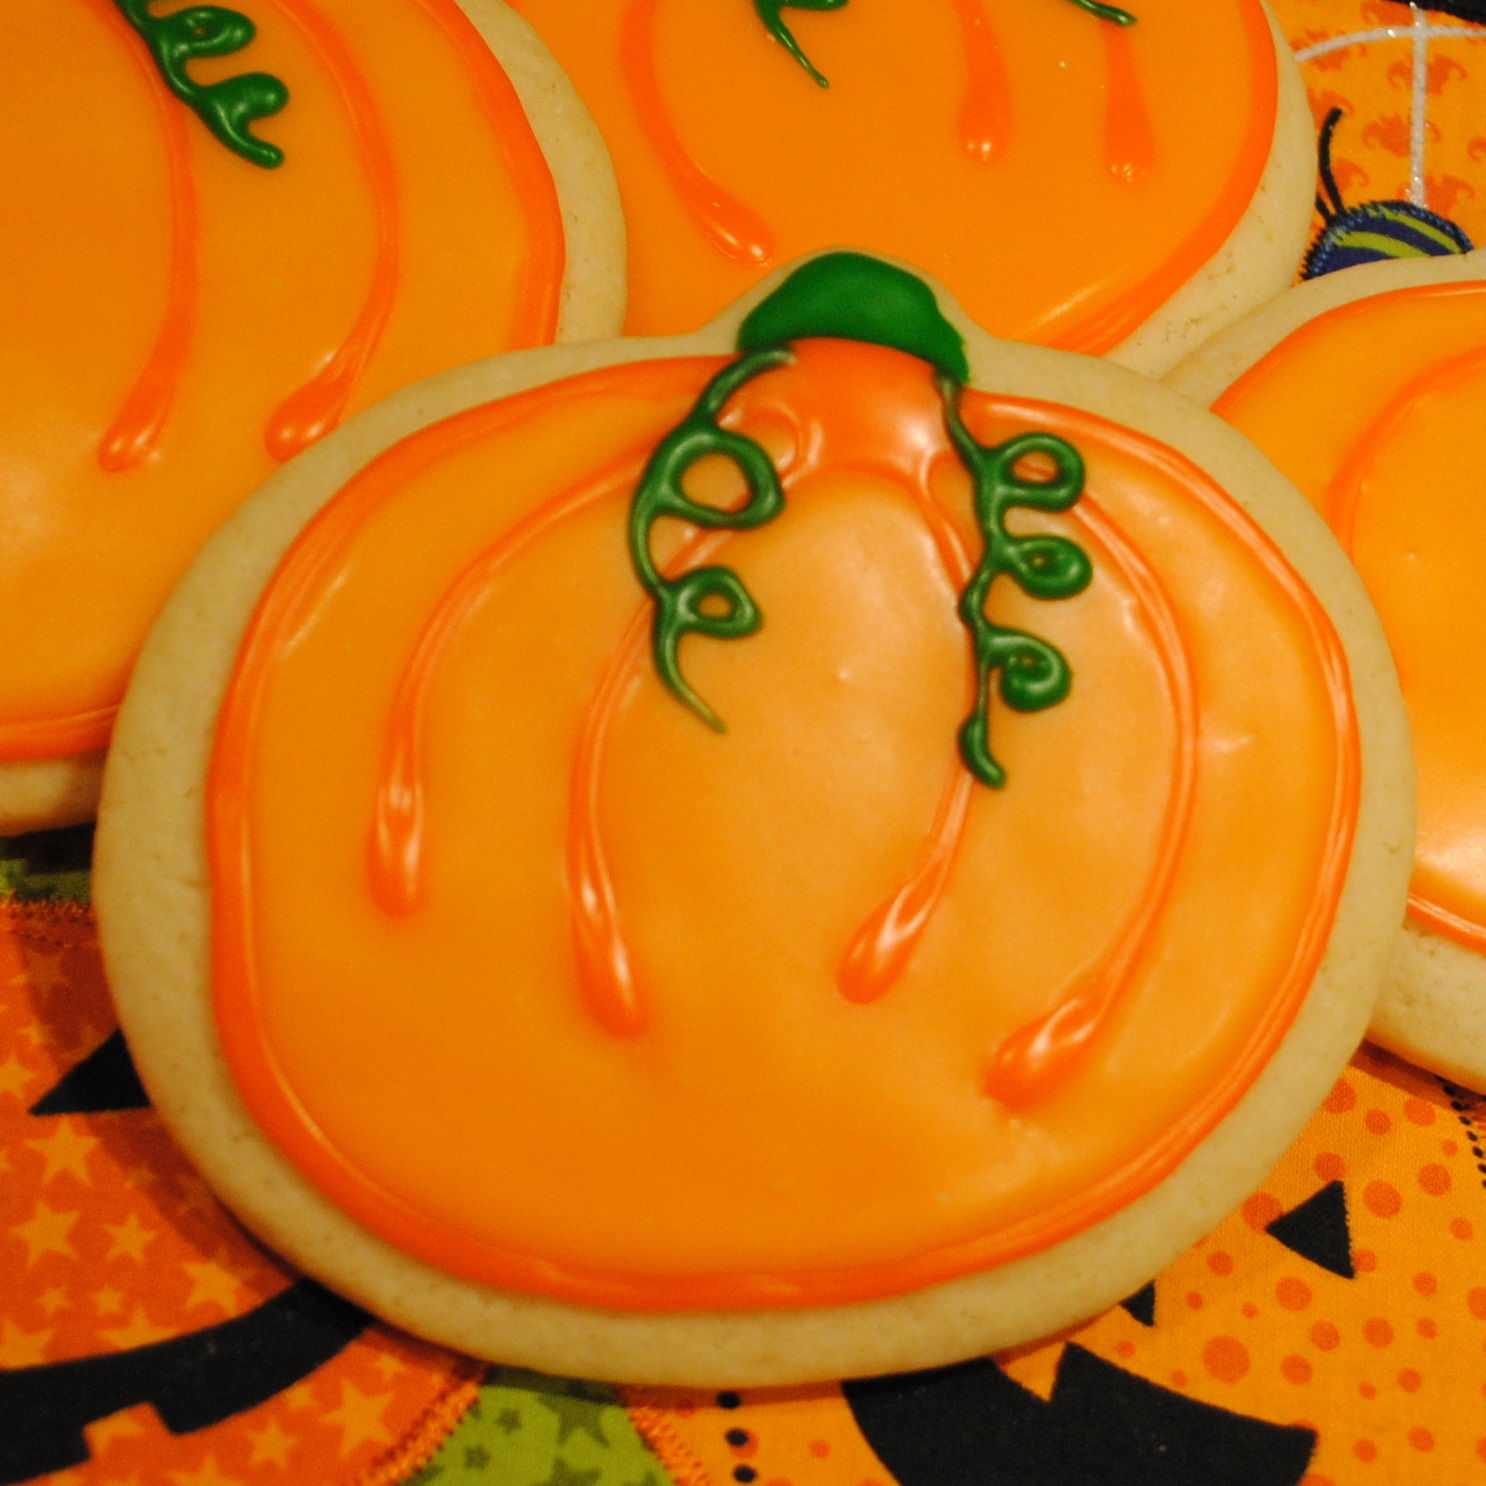 Pumpkin-shaped cookies decorated with orange icing with green stems and vine tendrils